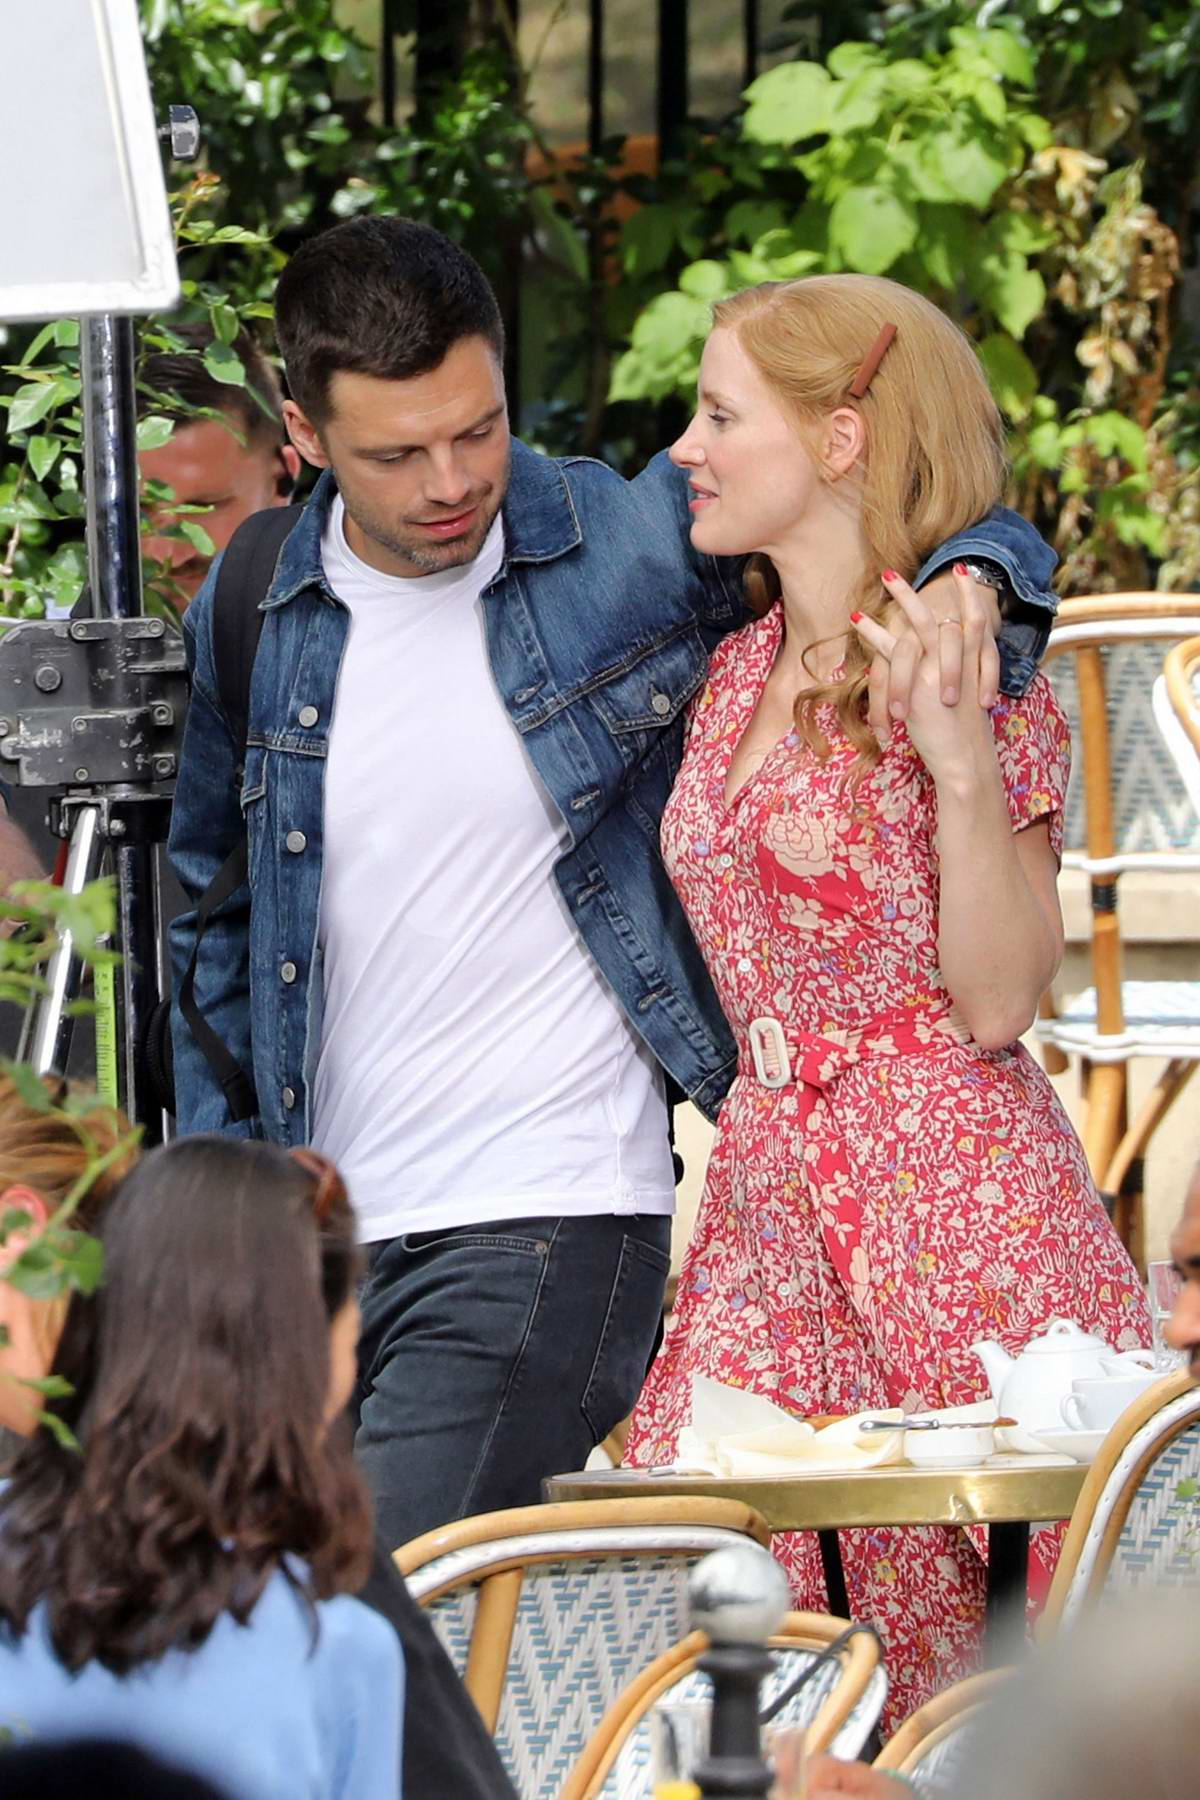 Jessica Chastain spotted on set of '355' with Sebastian Stan in Paris, France